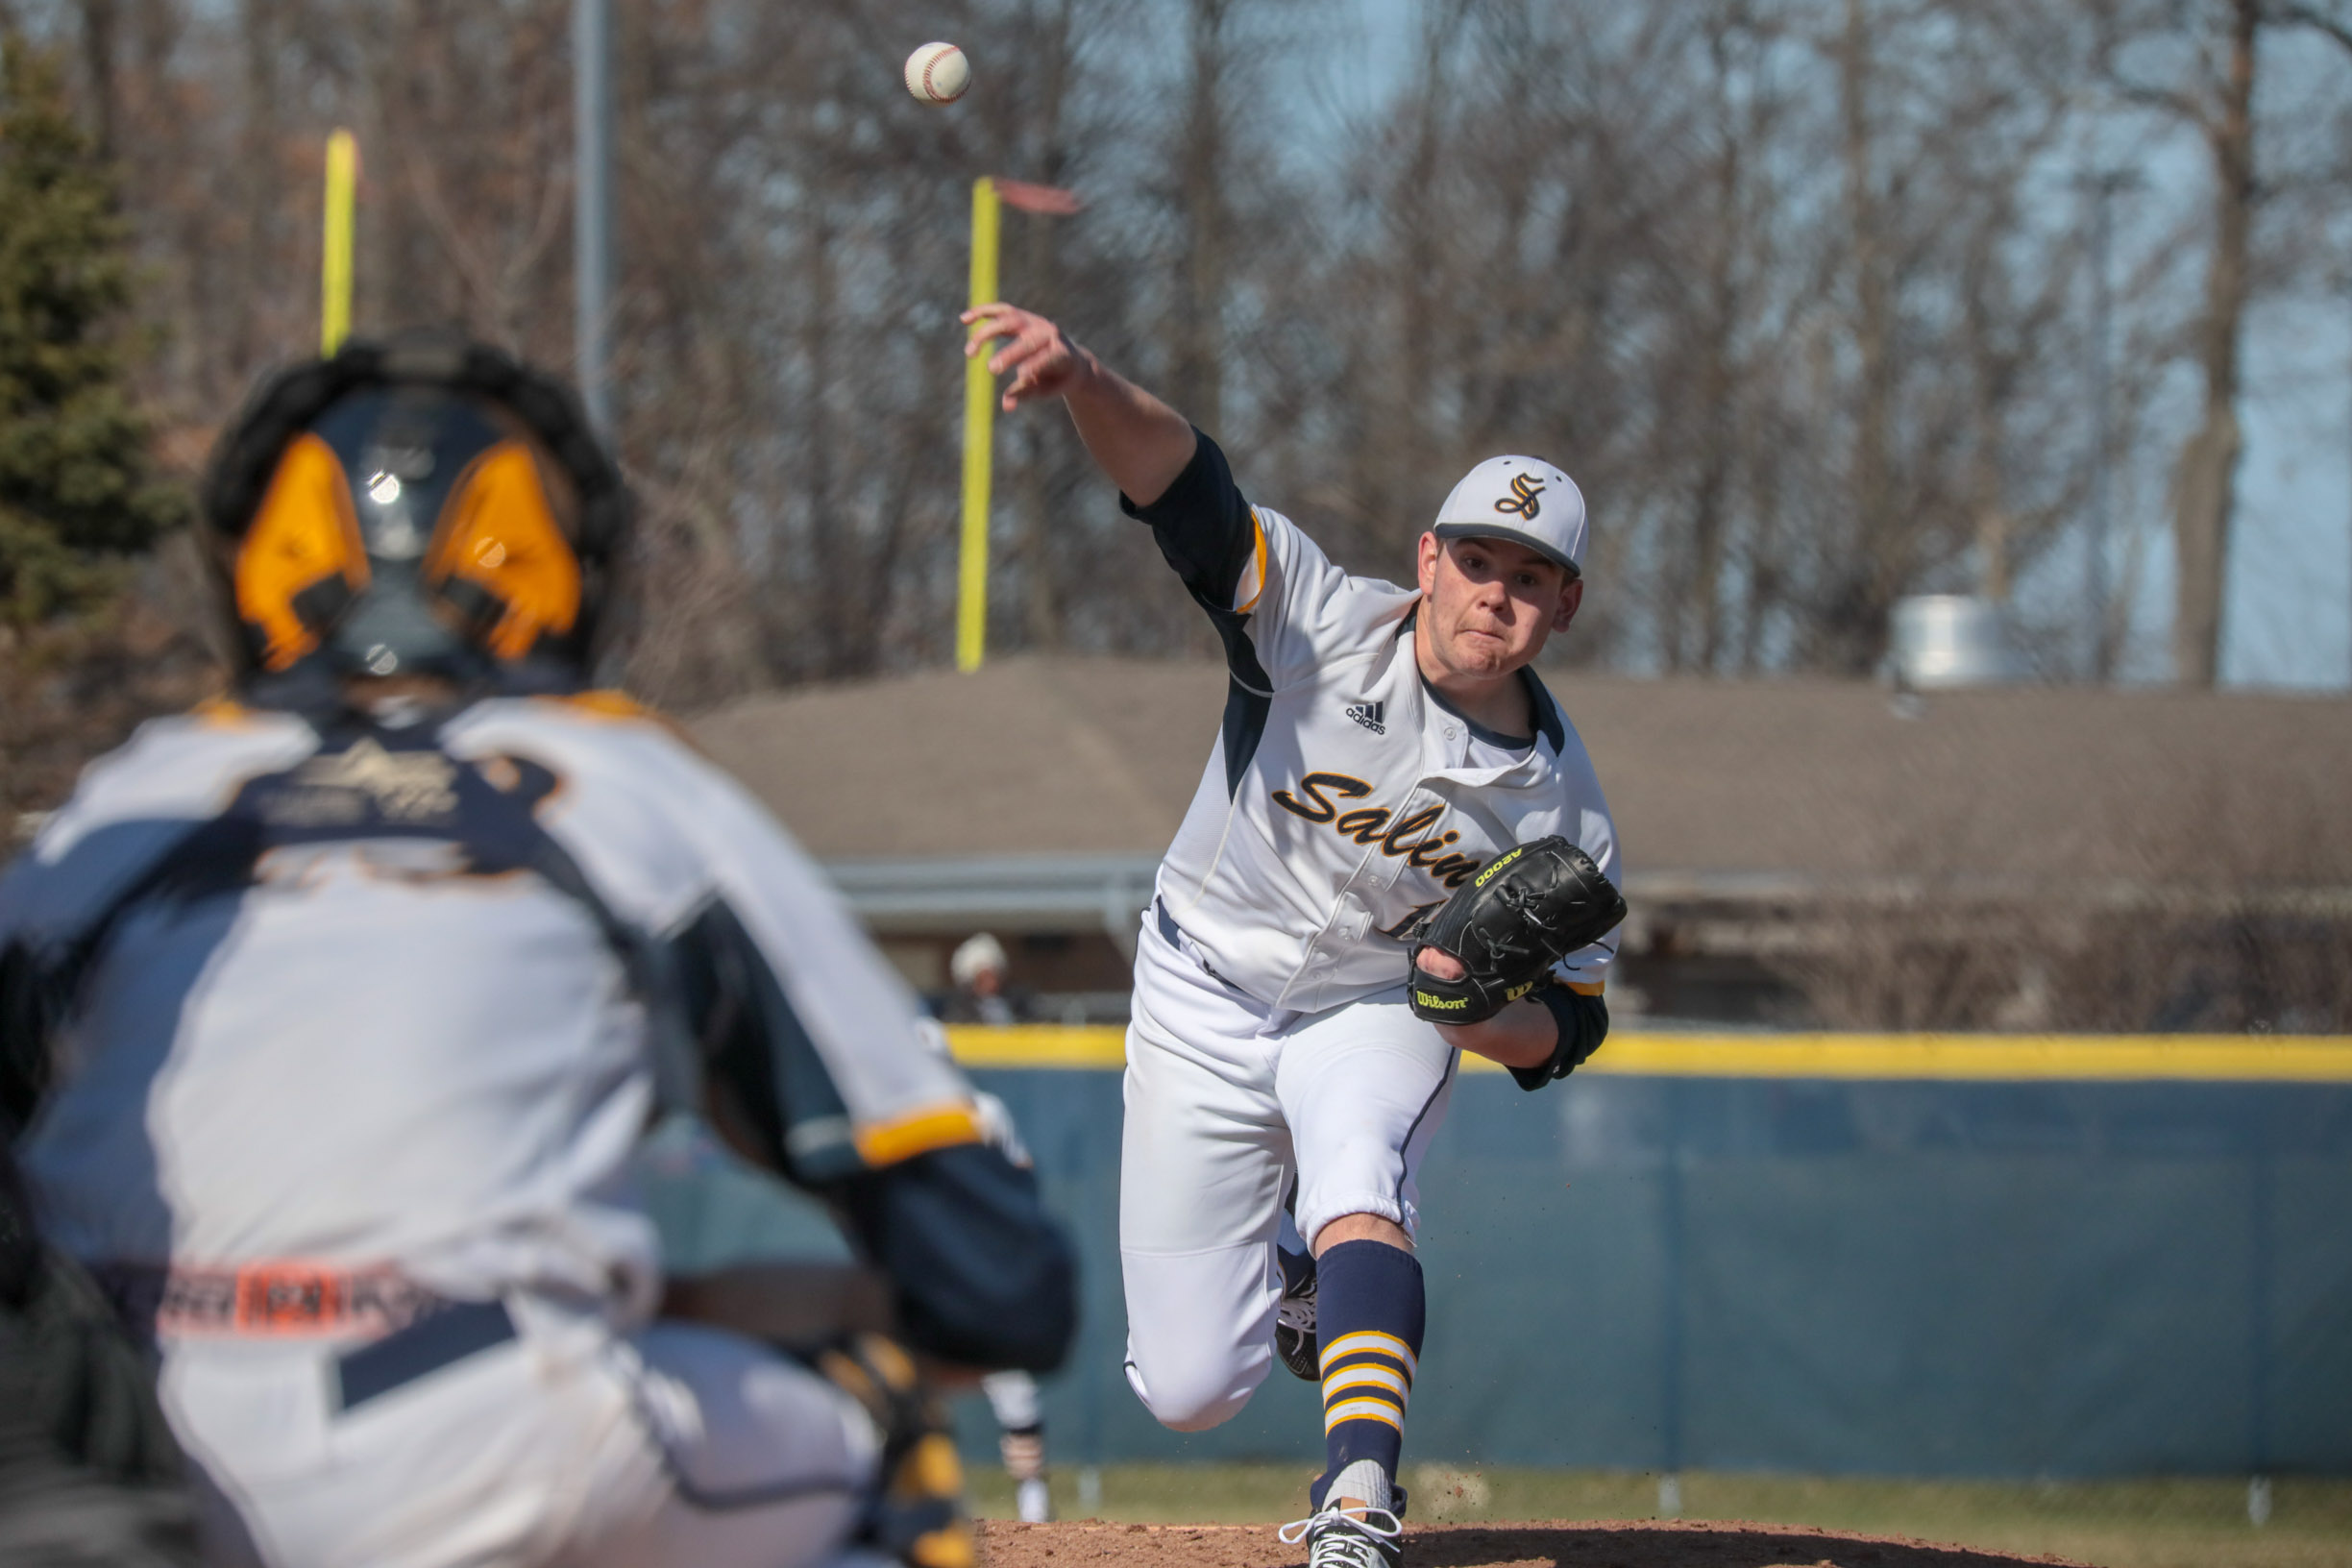 @TheSalinePost: Saline Takes 2 From Bedford, Improves to 5-0